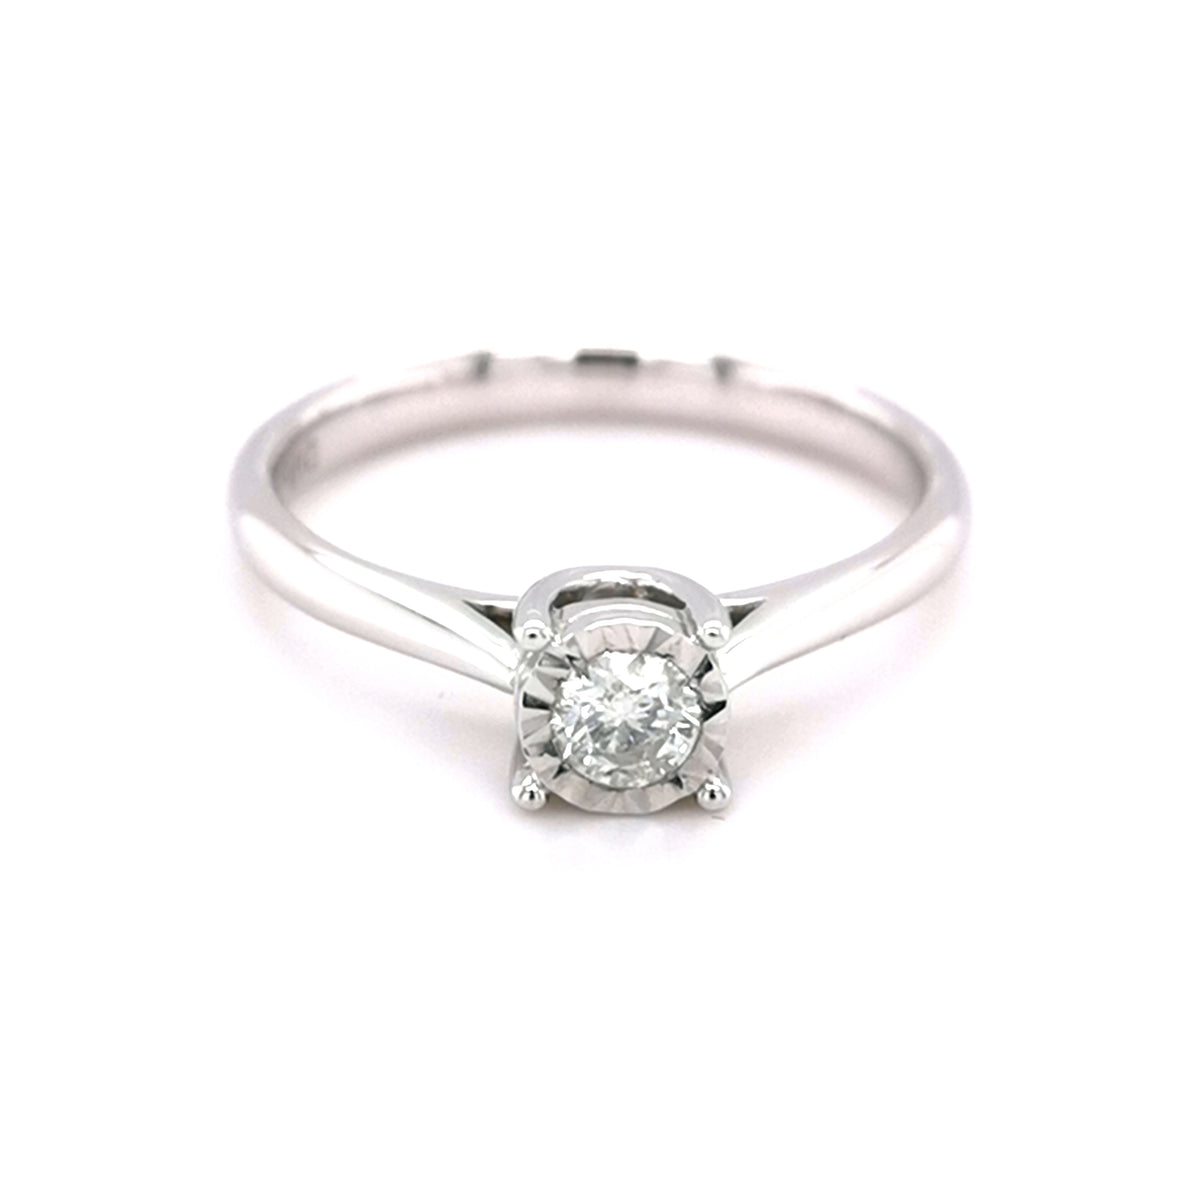 9ct White Gold Diamond Solitaire Ring - Sonny's Jewellers